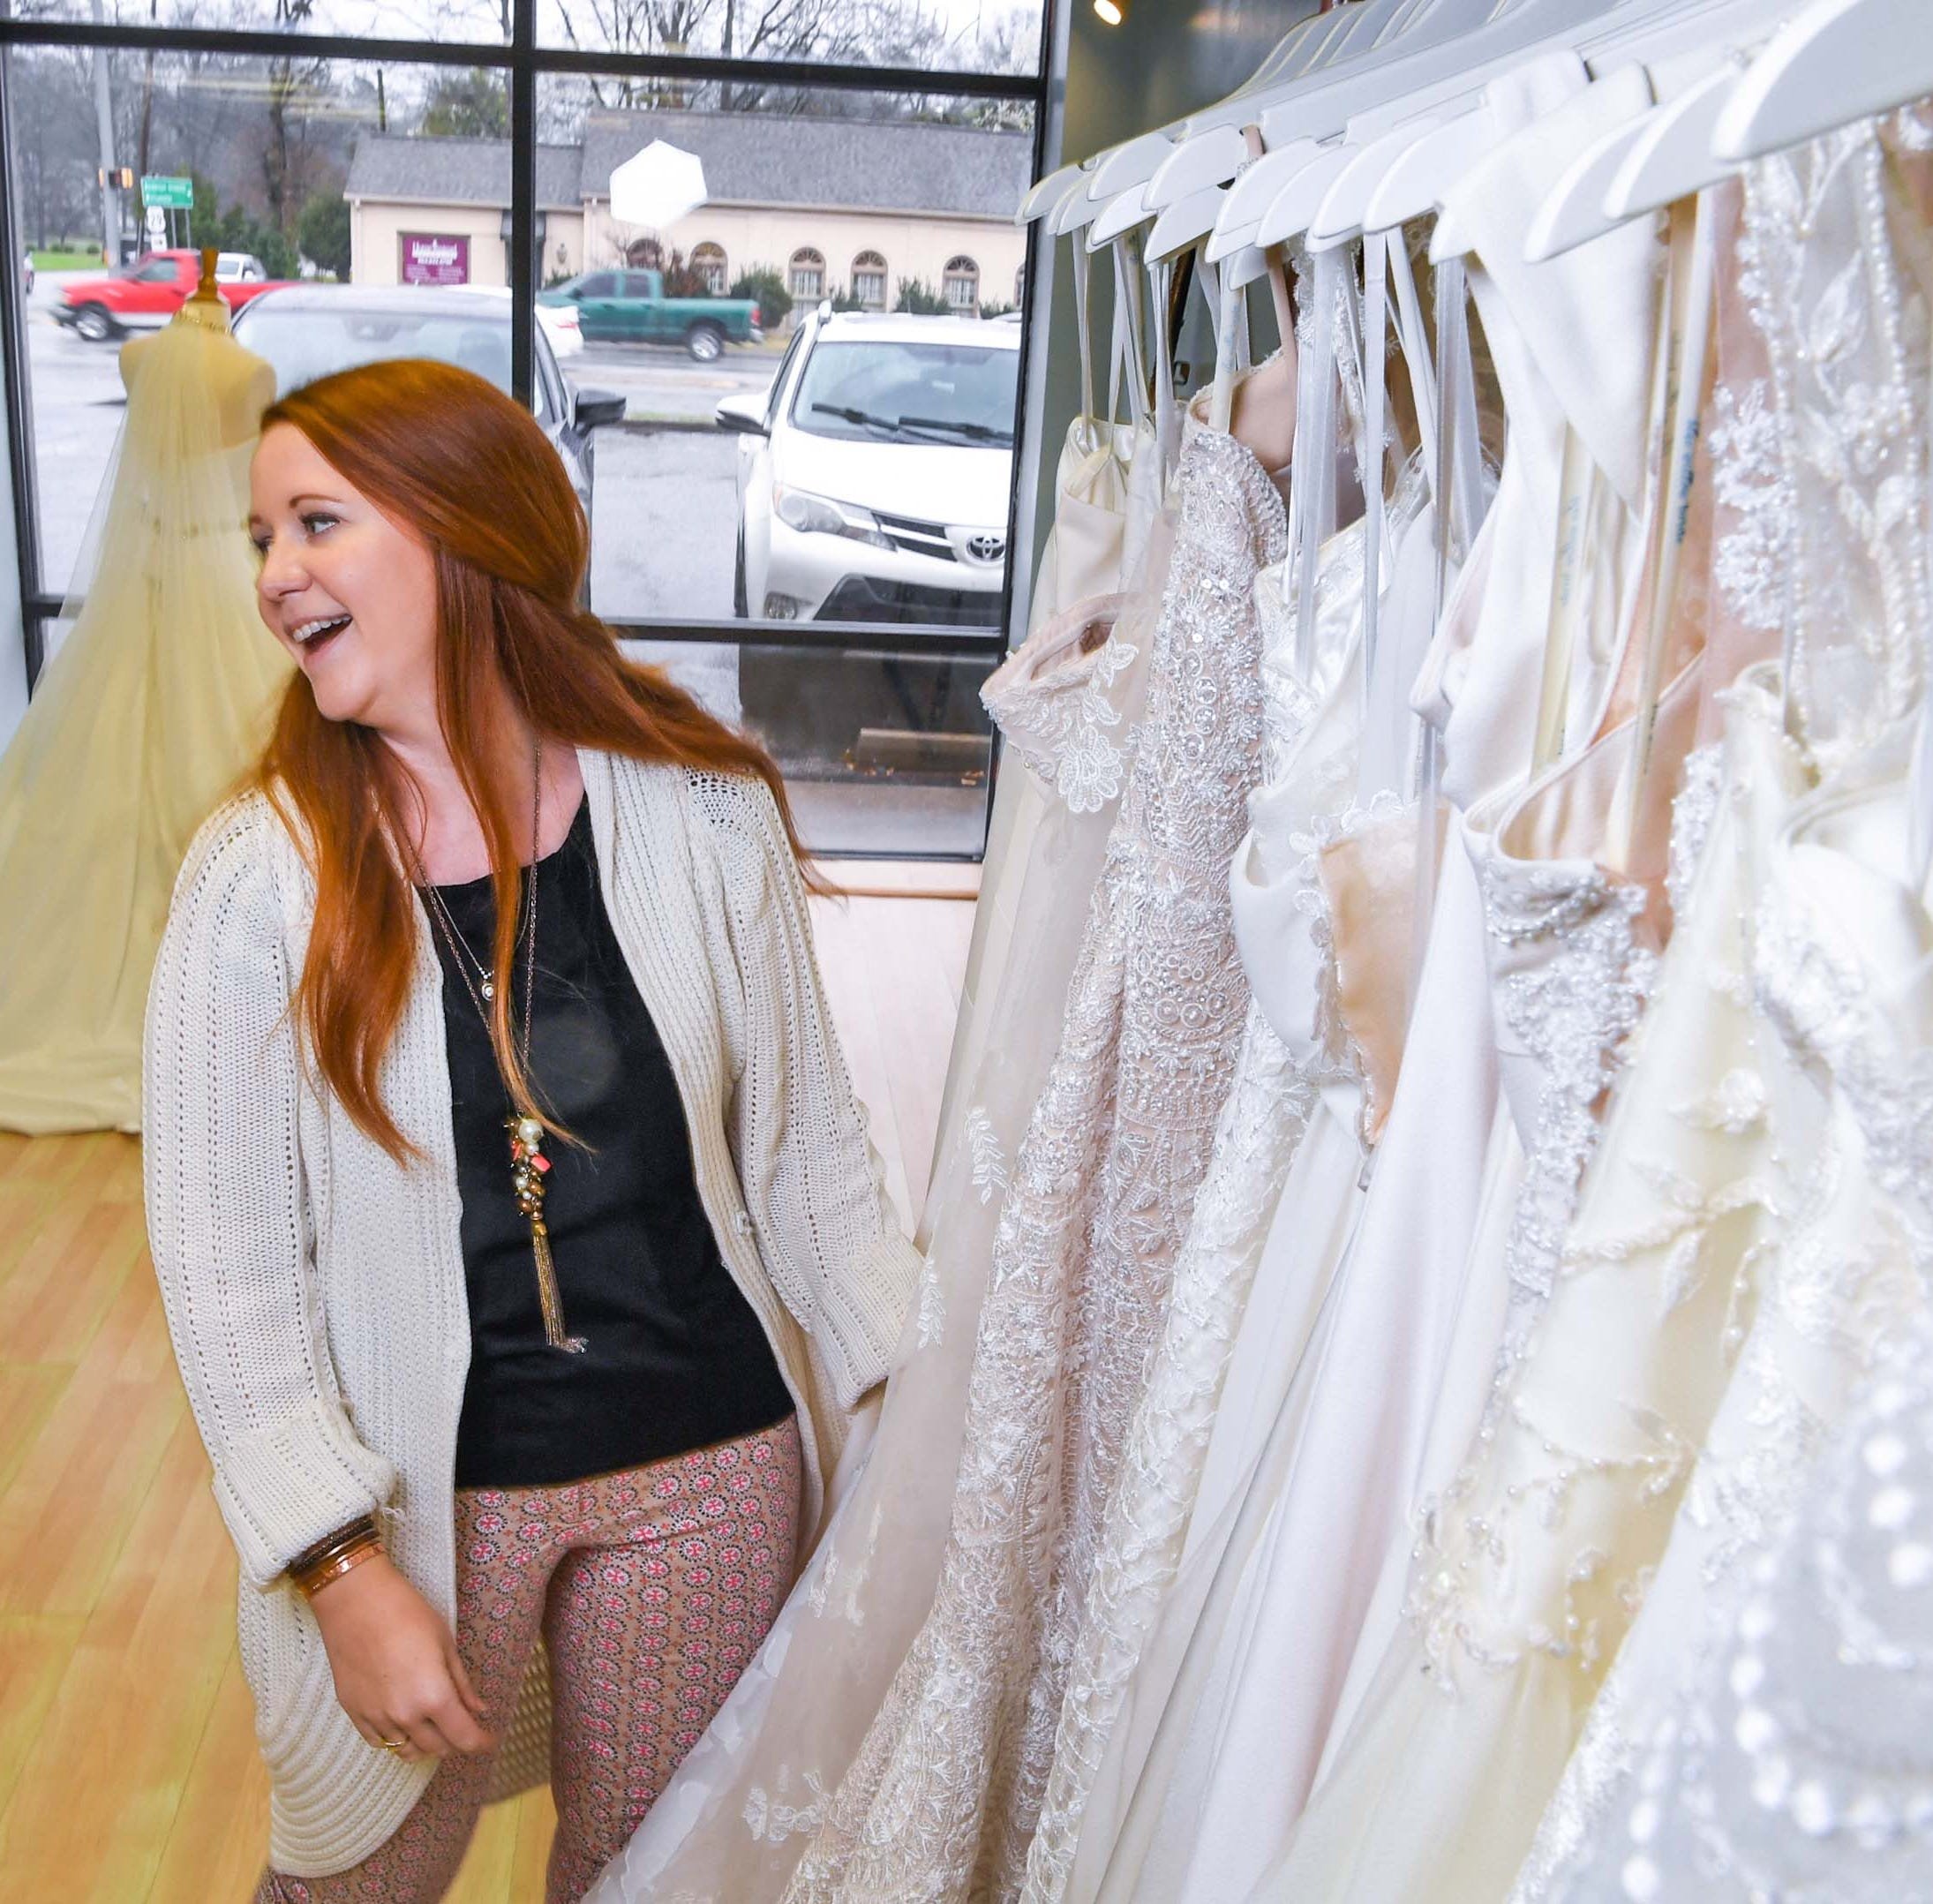 Anderson native opens bridal shop to fulfill dream she shared with her late mother